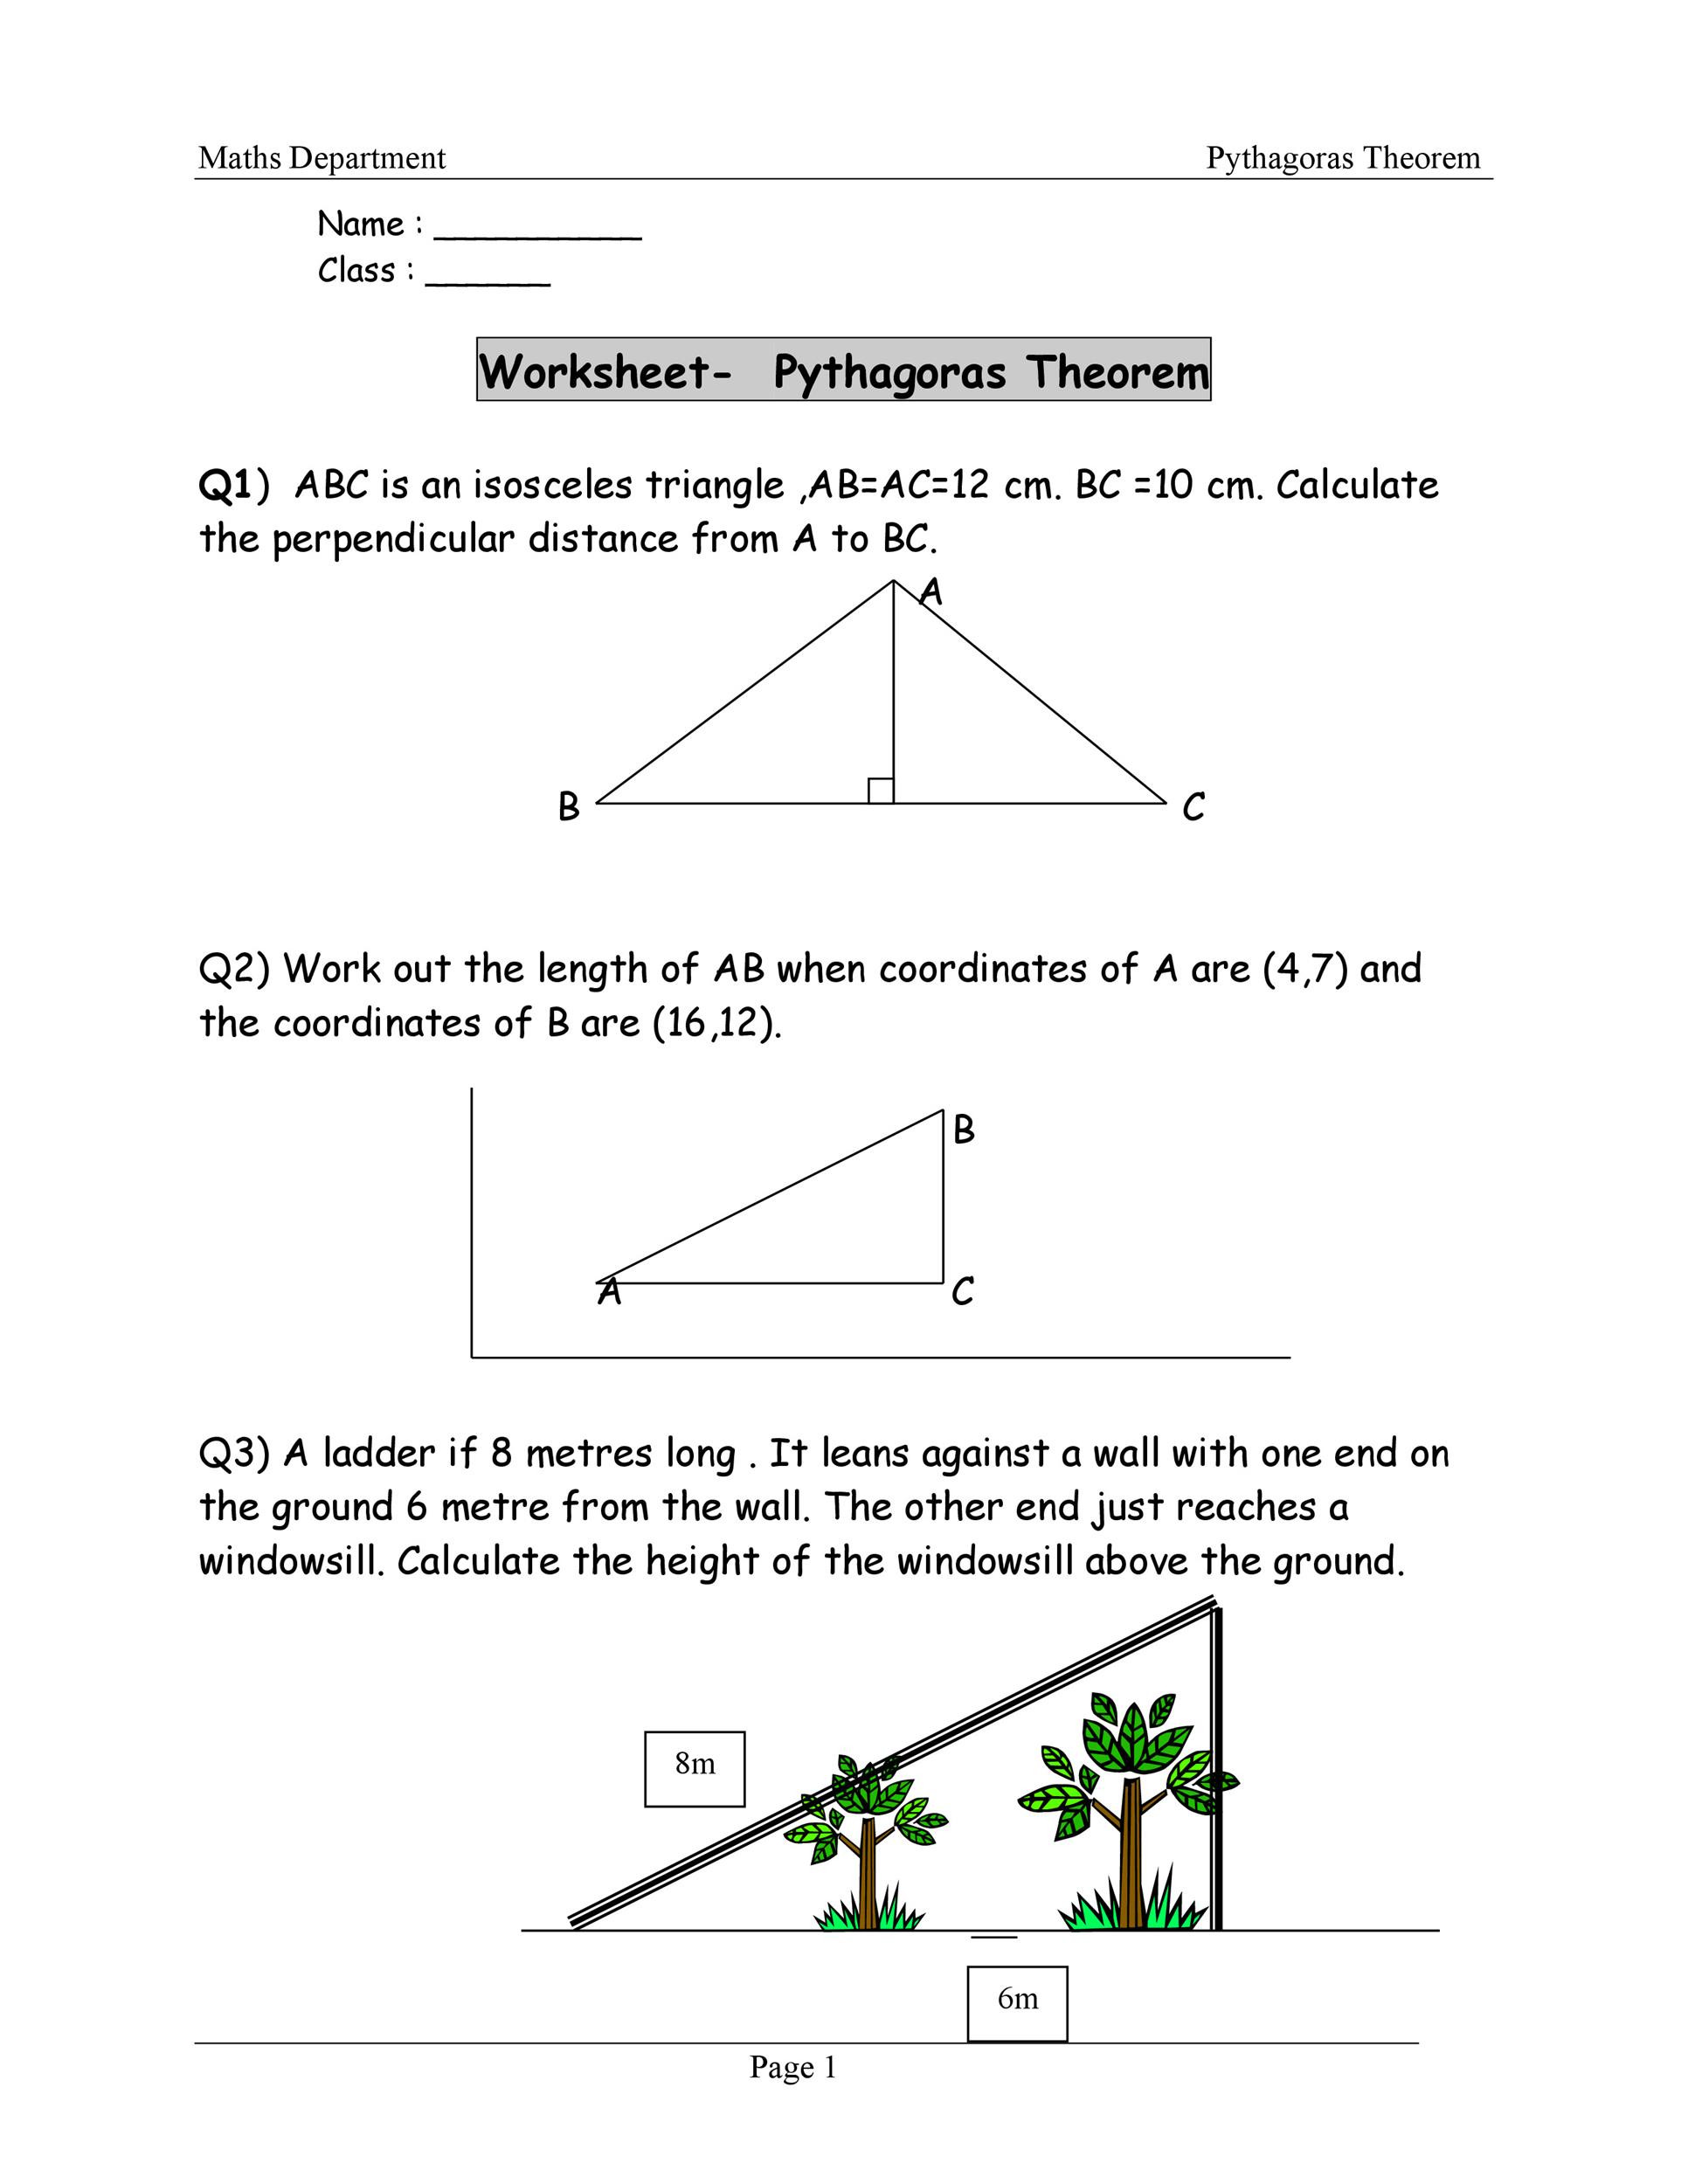 Pythagoras theorem Worksheet with Answers 48 Pythagorean theorem Worksheet with Answers [word Pdf]